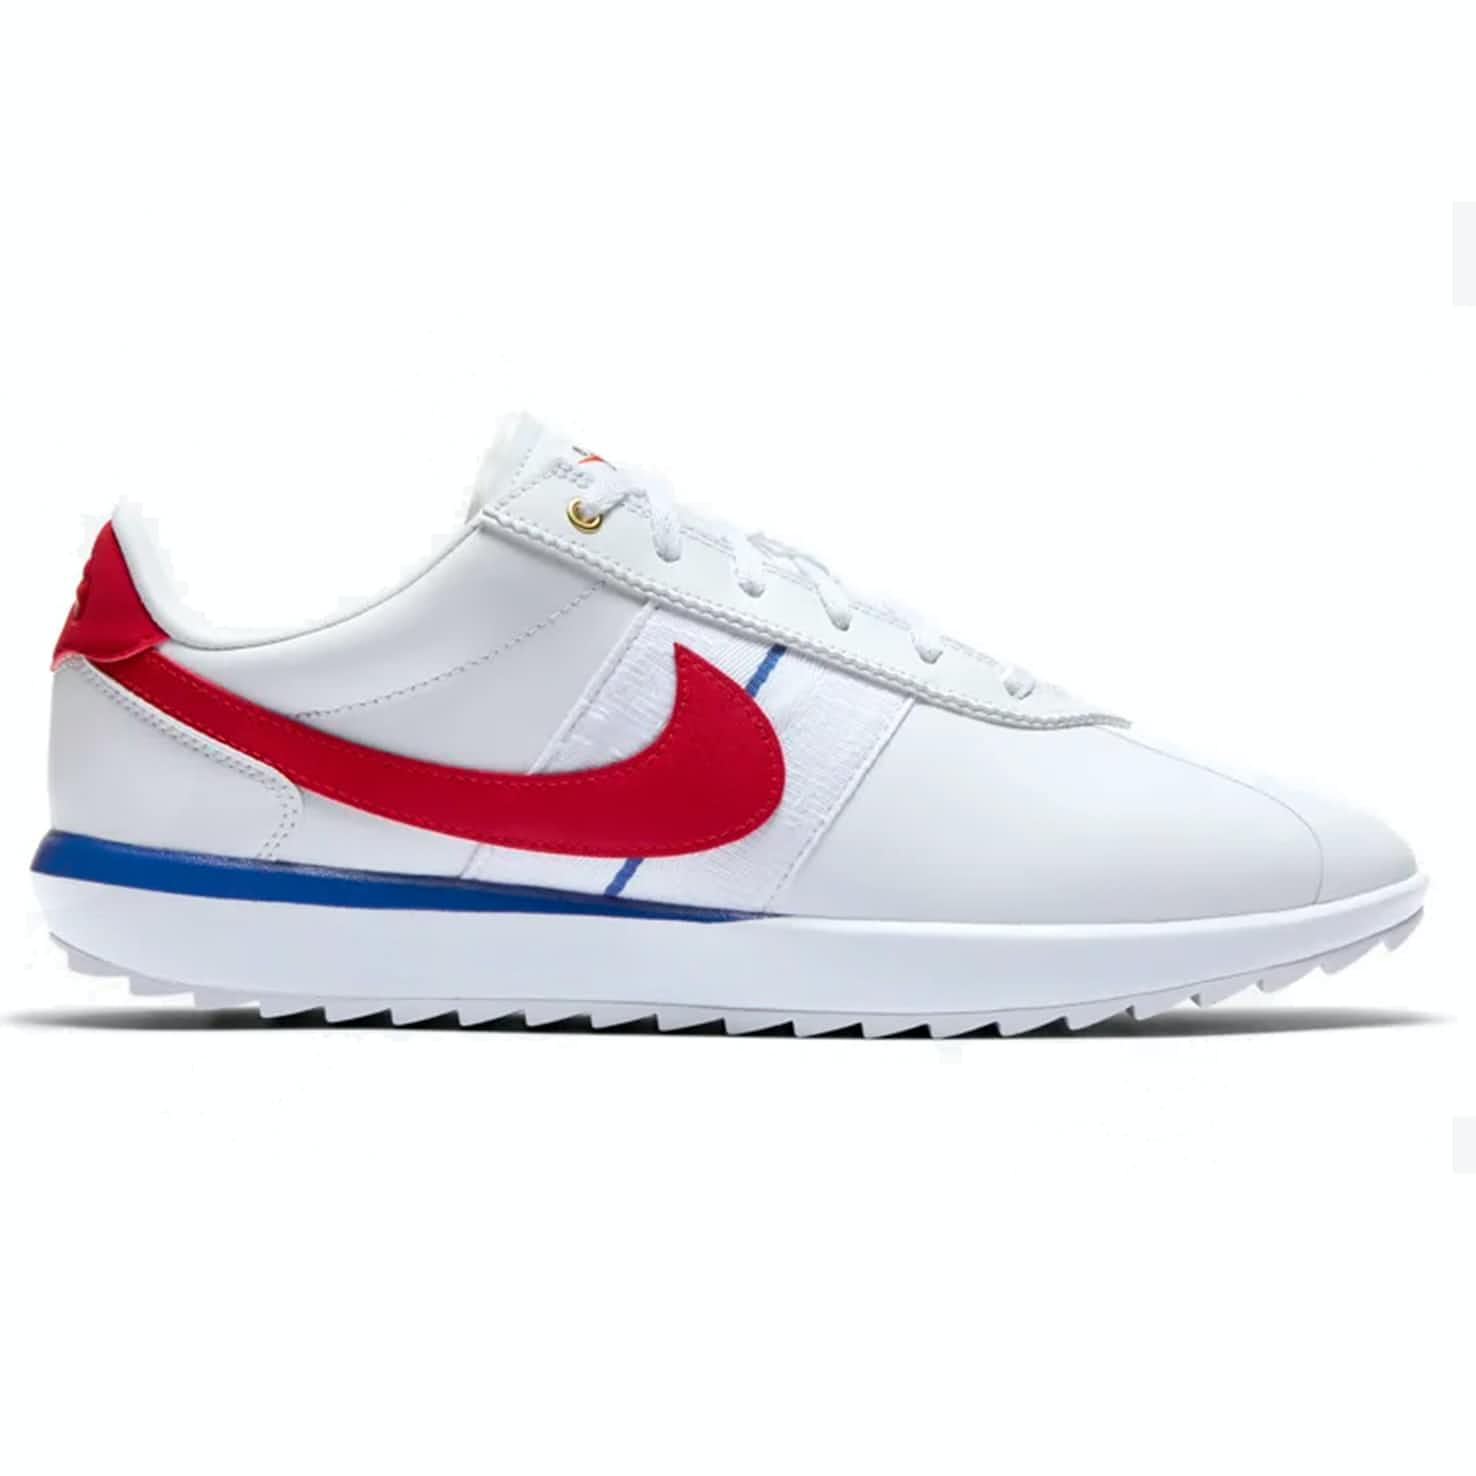 Womens Cortez Golf White/Varsity Red/Royal - AW19